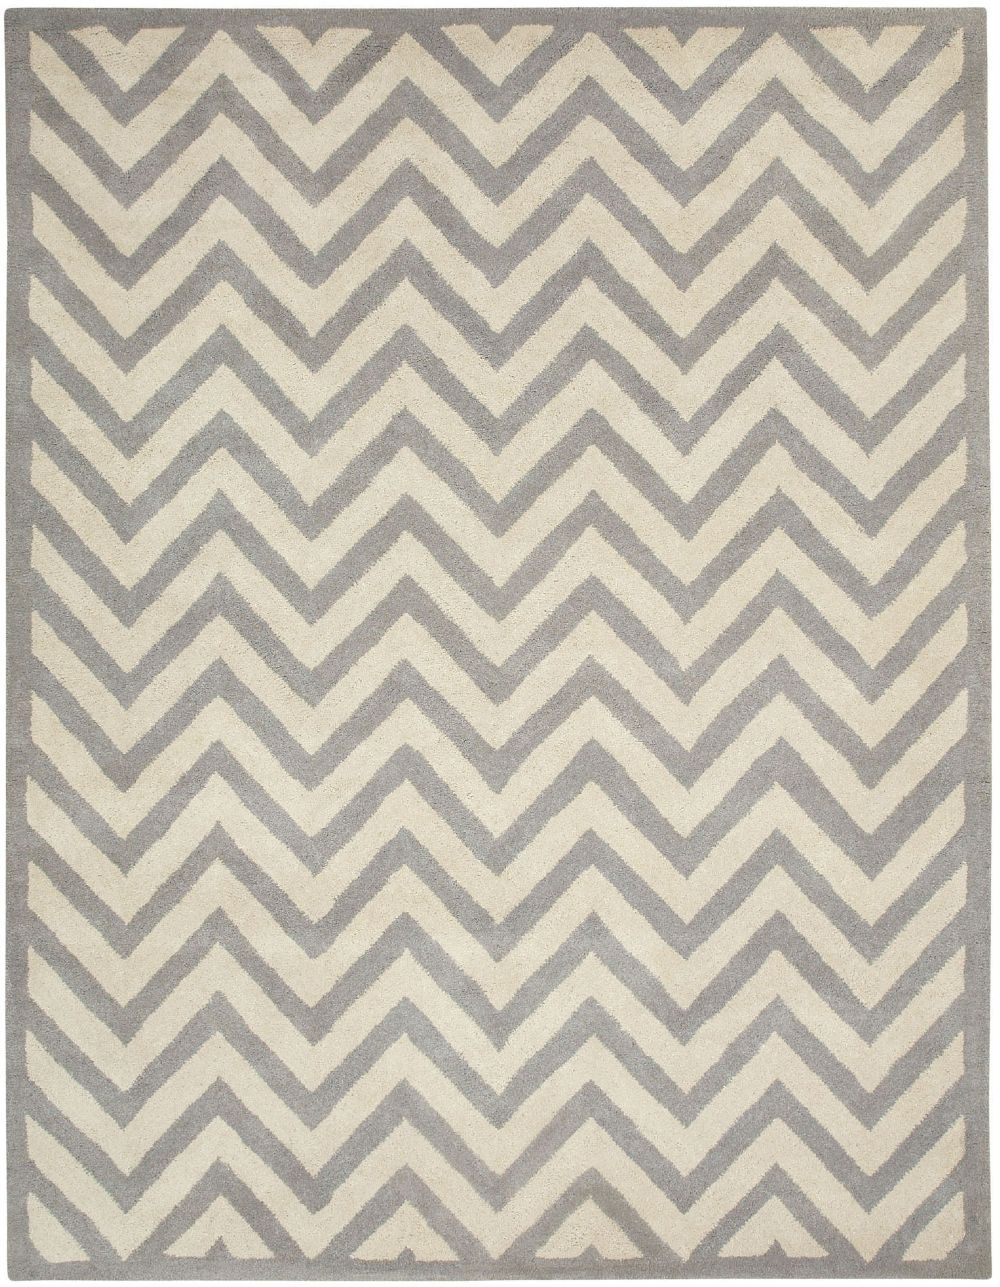 capel charisma-chevron contemporary area rug collection